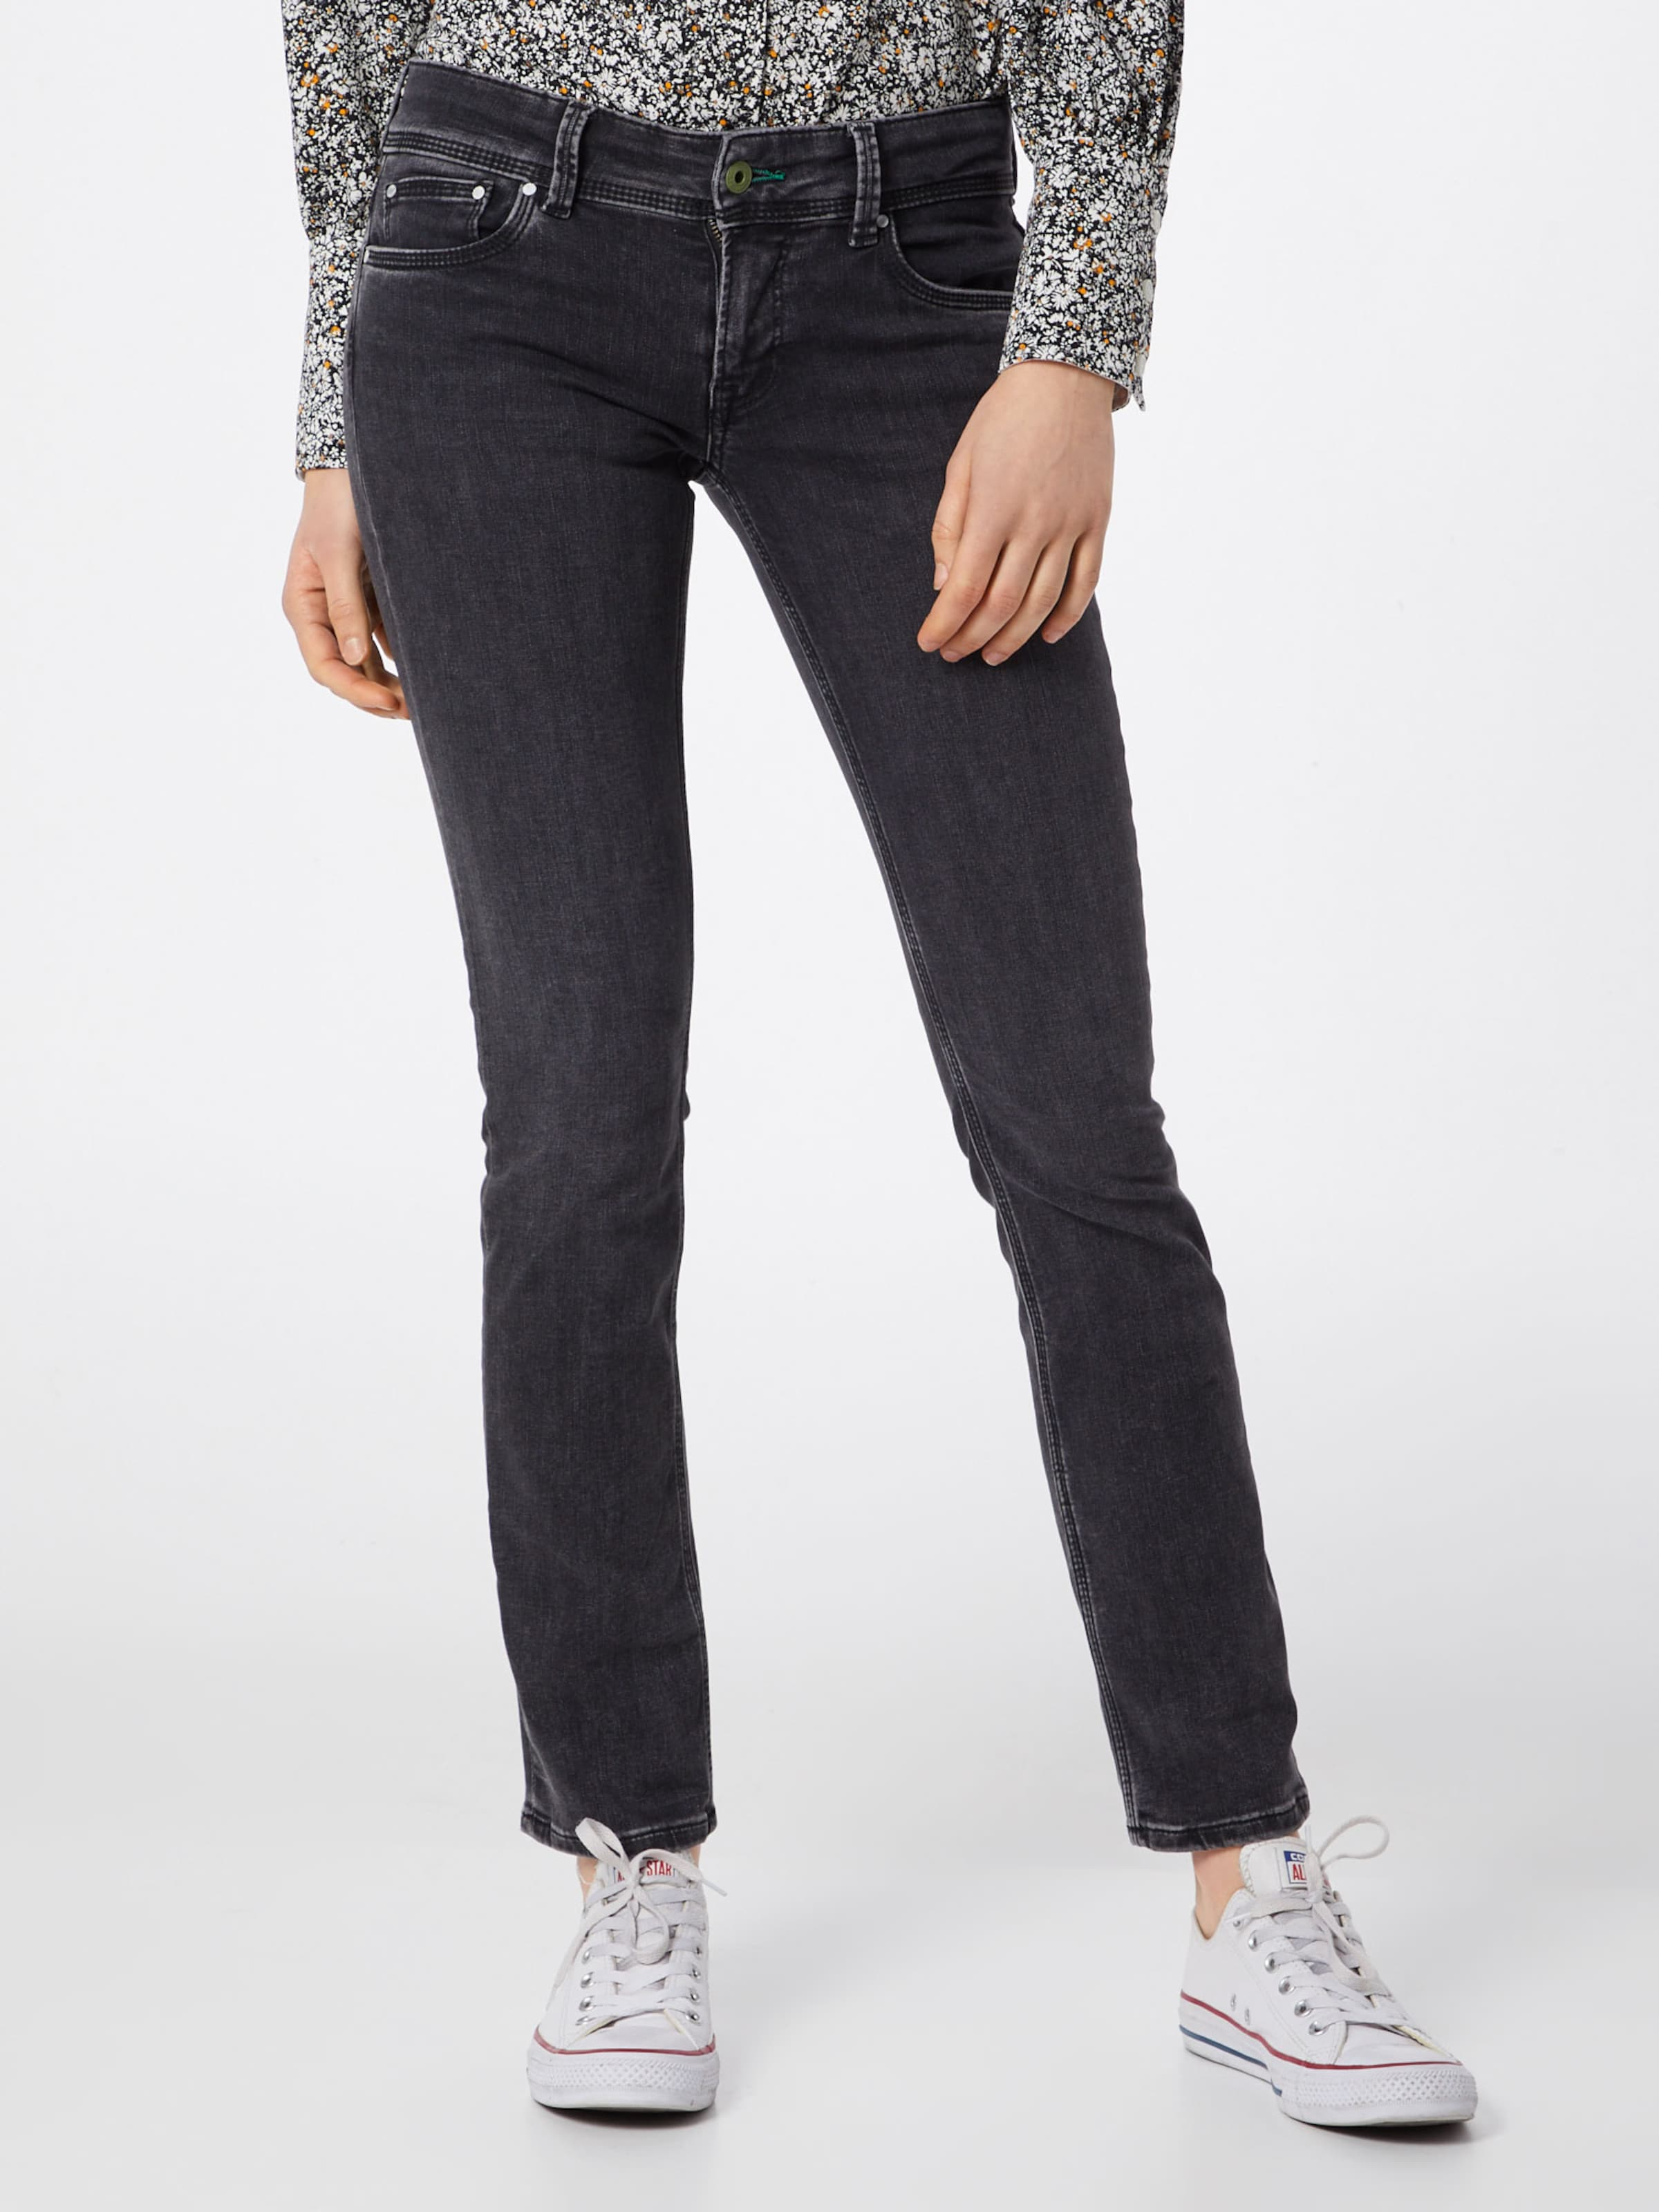 Pepe Jeans In Black 'saturn' Denim UVpMqGSz